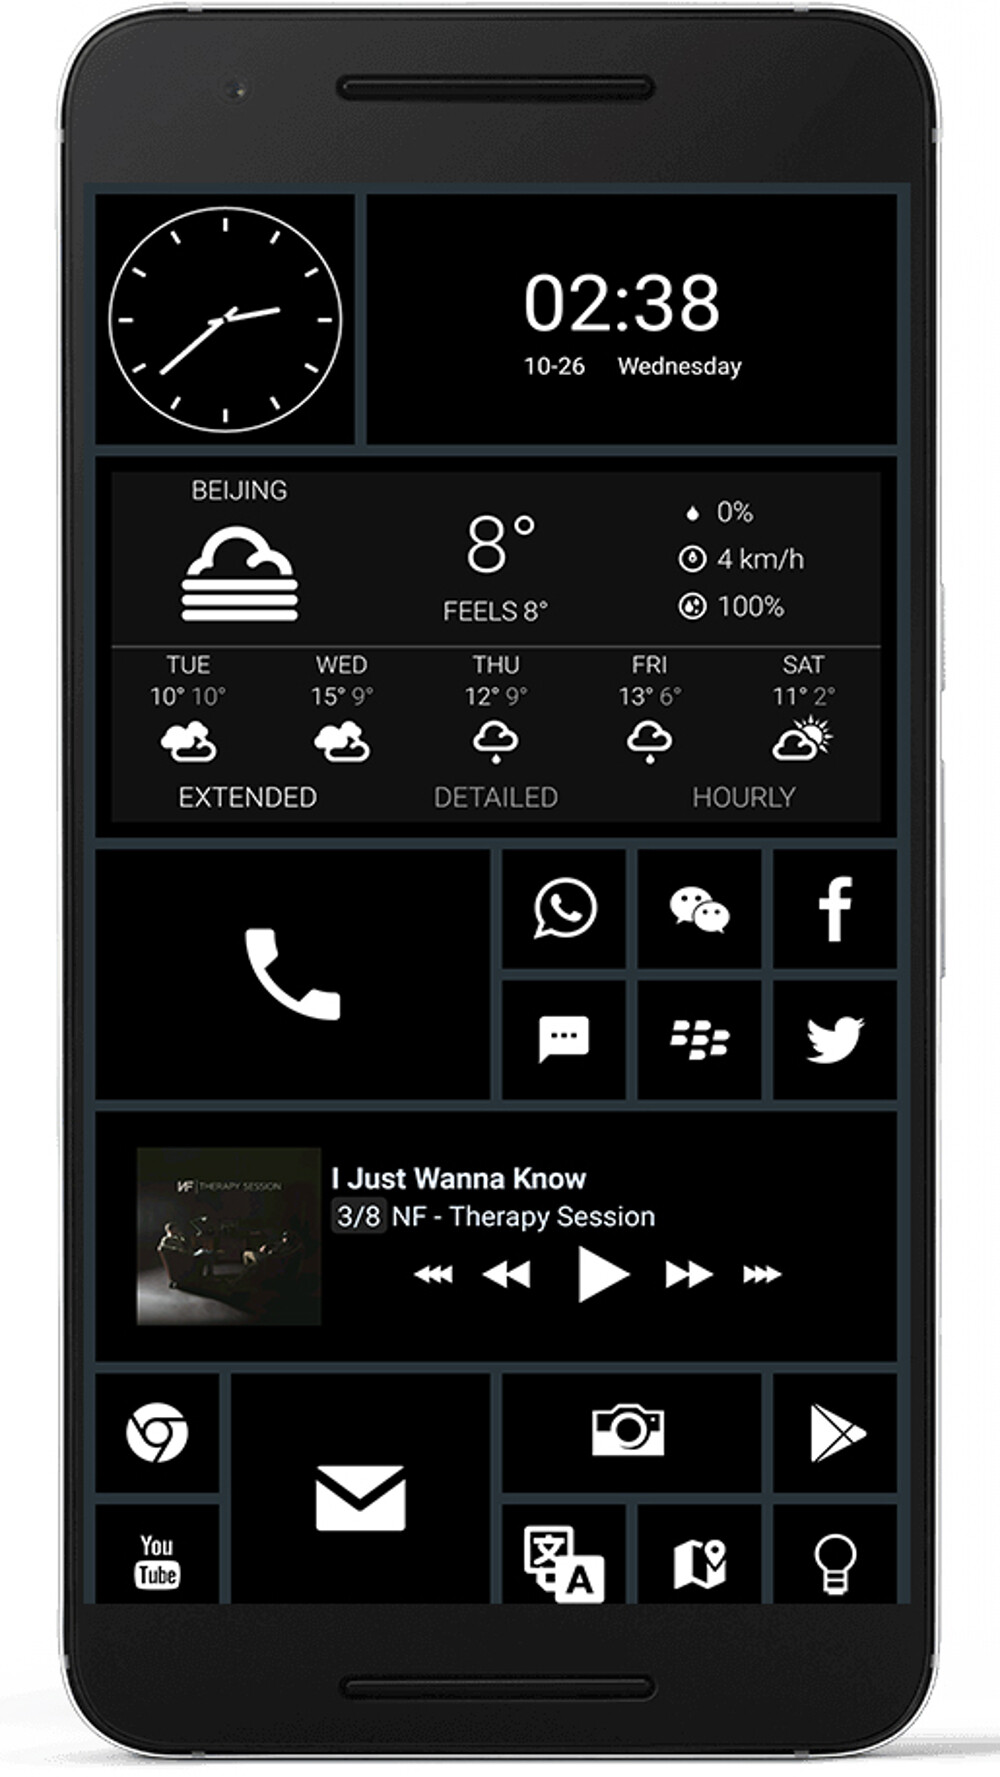 10 beautiful custom Android home screen layouts #5